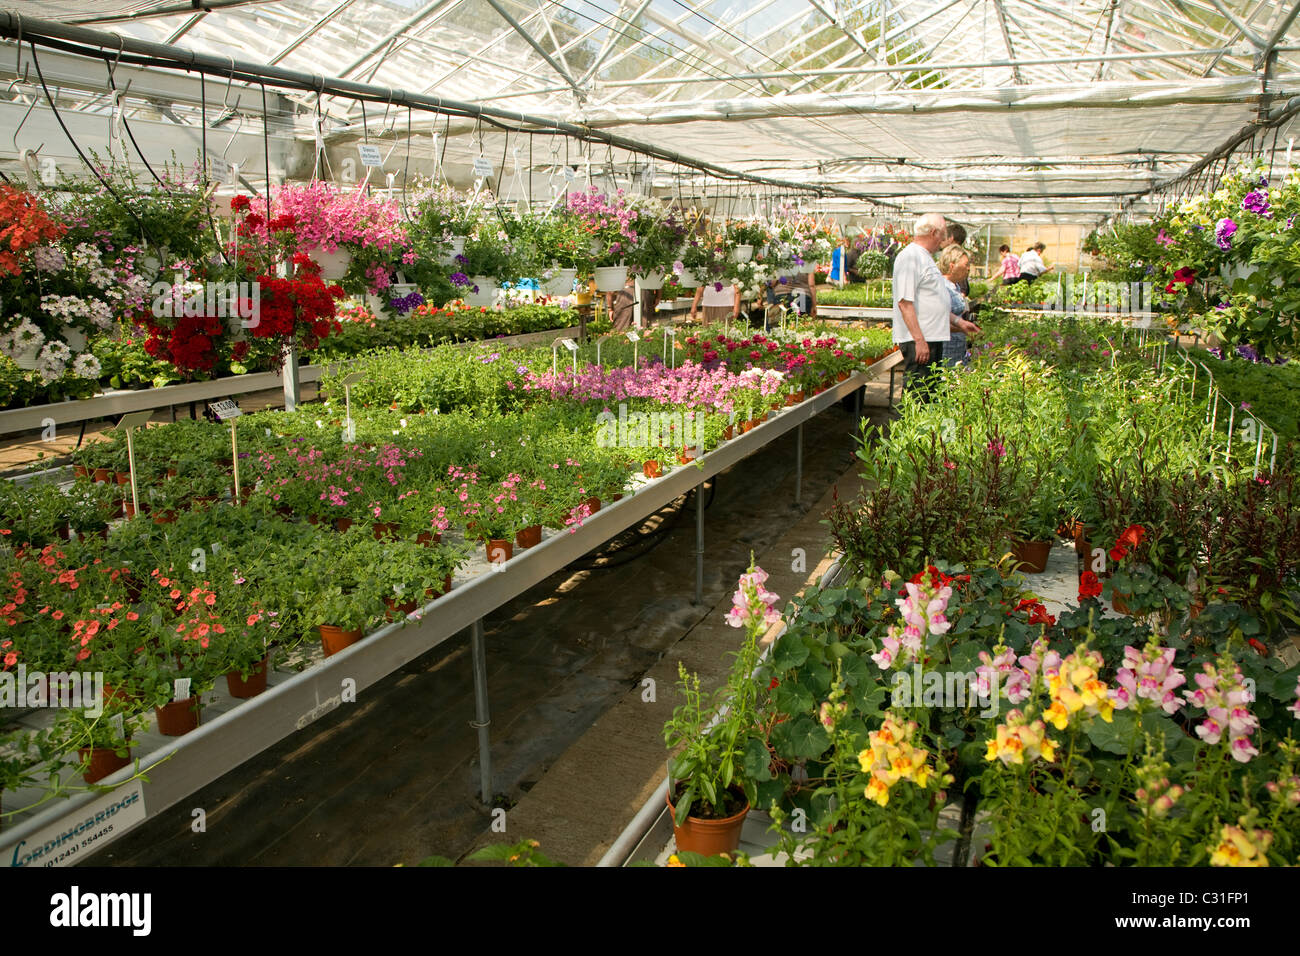 Customers plants for sale inside nursery greenhouse - Stock Image